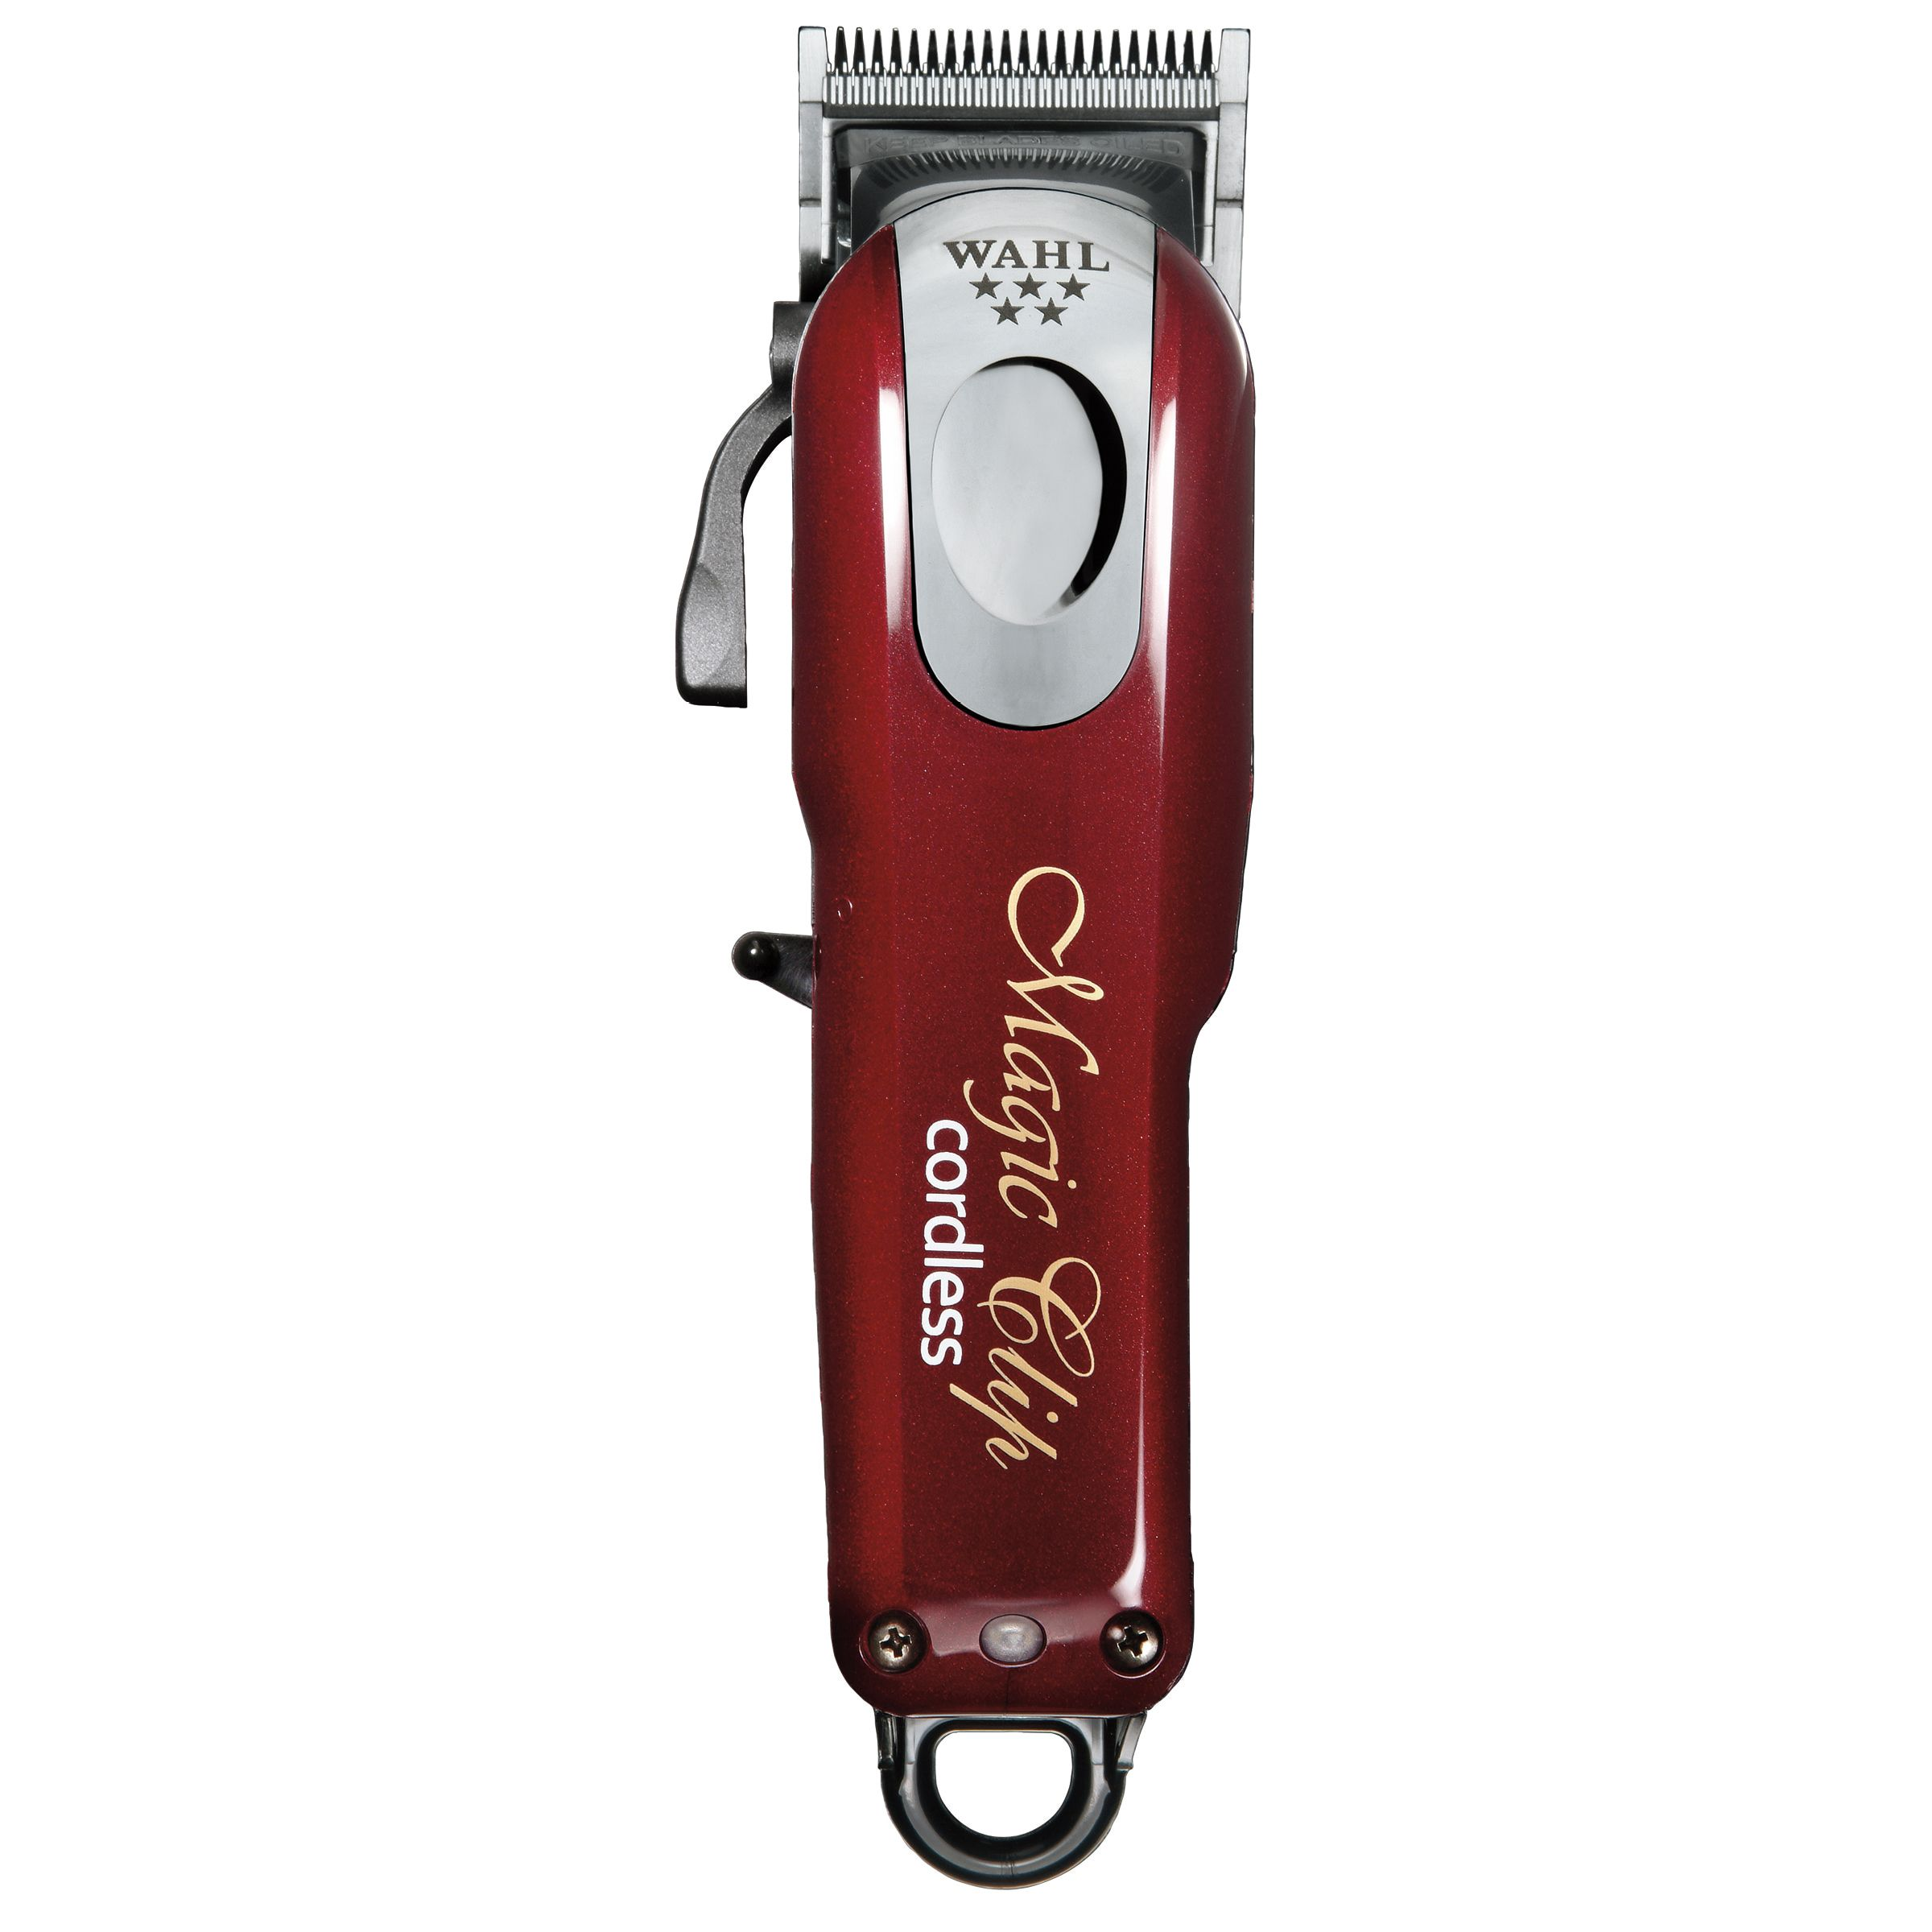 Wahl Professional 5 Star Cordless Magic Clip